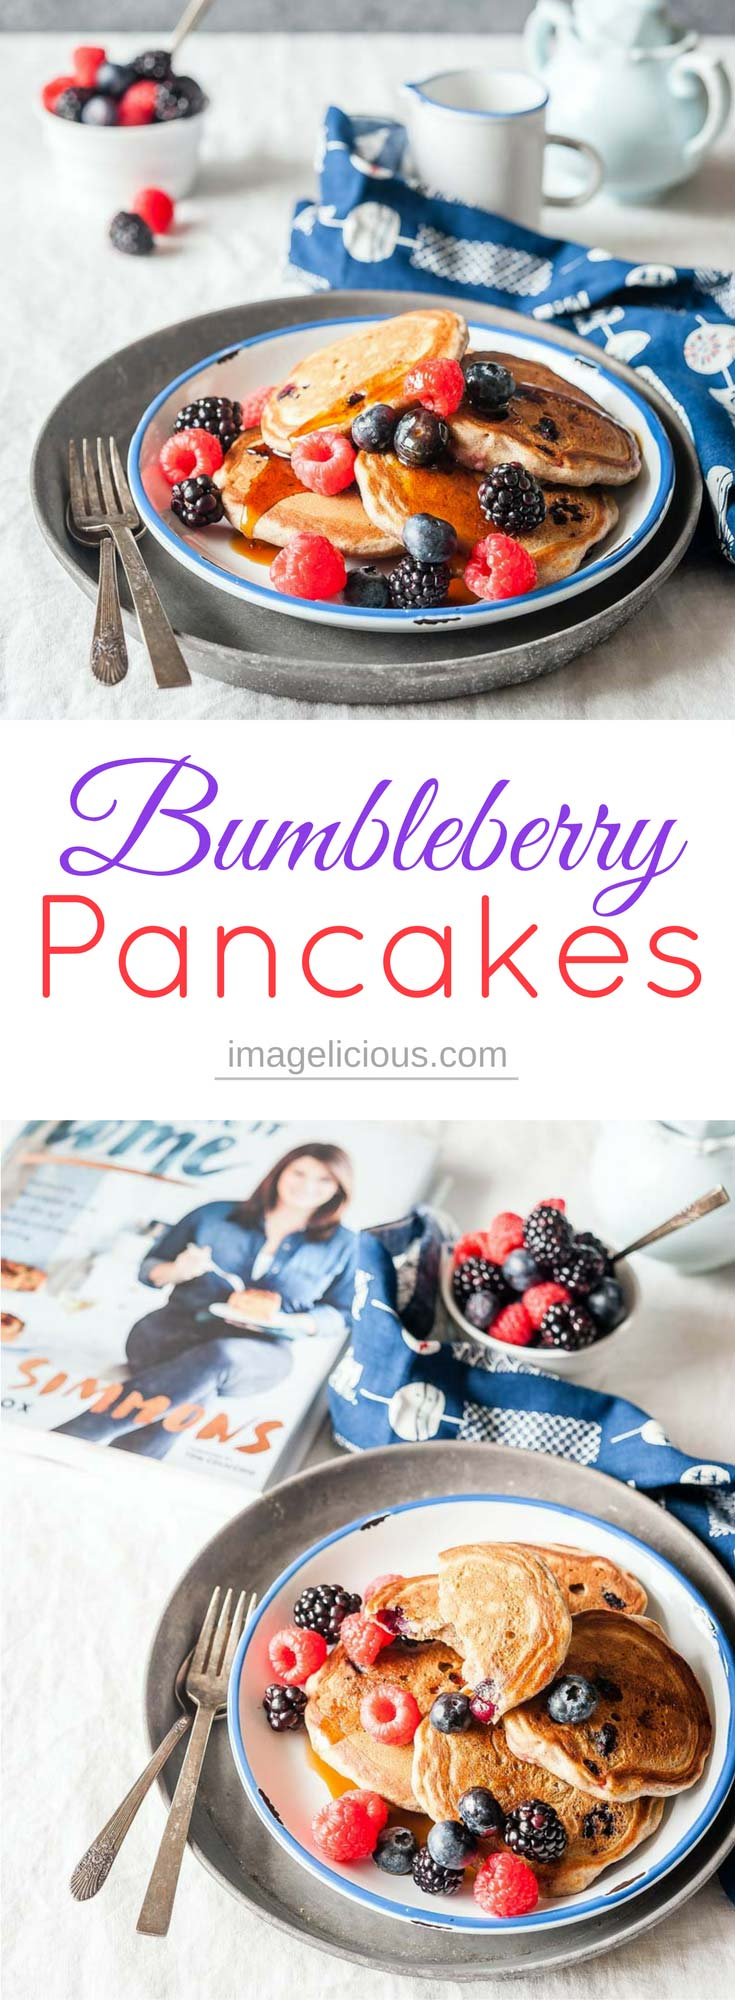 These Bumbleberry Pancakes are absolutely delicious! Fluffy, lightly sweetened, bursting with juicy berries. Buckwheat flour adds a little bit extra nutrition and flavour to this breakfast | Imagelicious #breakfast #brunch #pancakes #berries #bumbleberry #bumbleberrypancakes #buckwheat